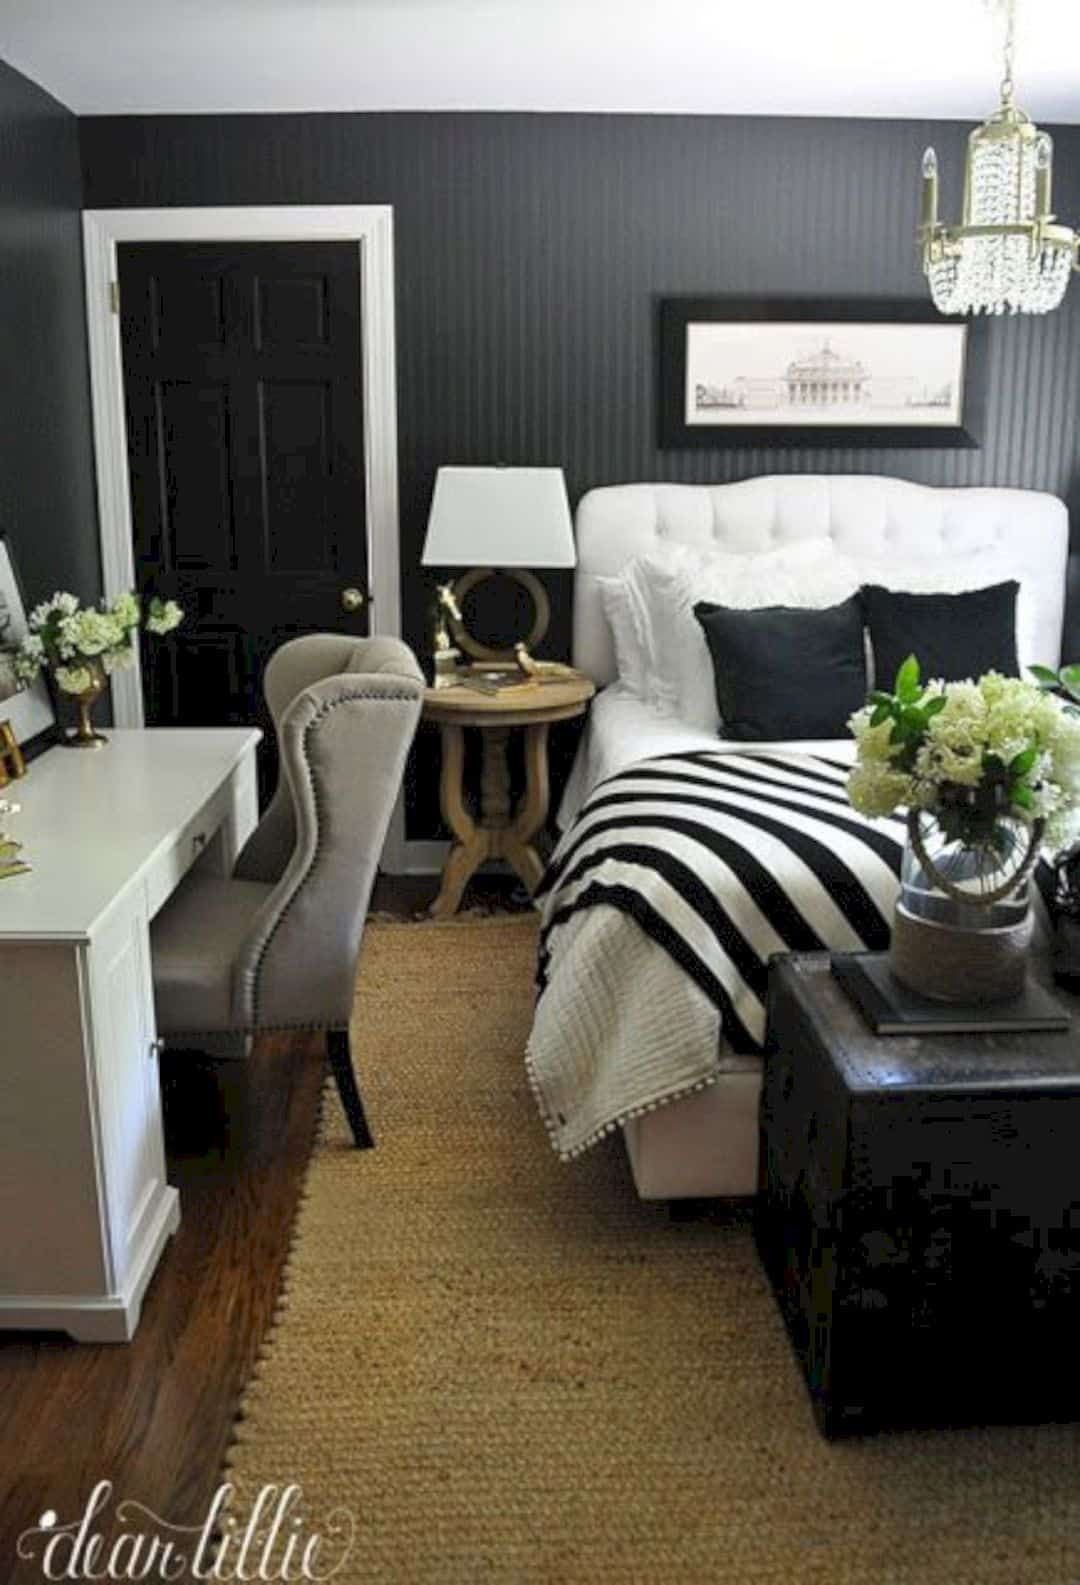 16 Comfort Furniture Placement Ideas | Home office bedroom ...